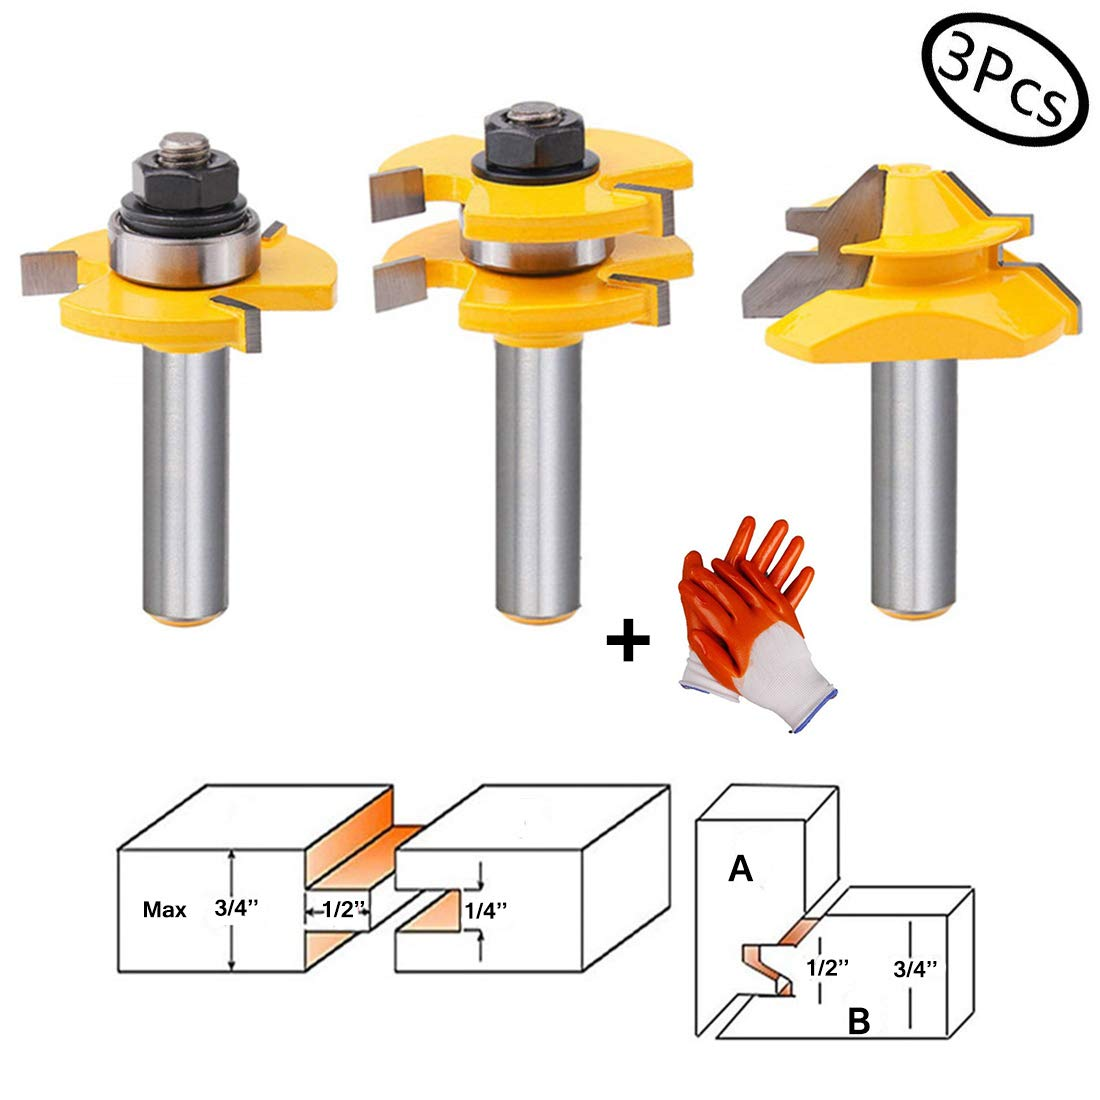 Tongue and Groove Router Bit Tool Set 3 Teeth Adjustable T Shape Wood Milling Cutter 1/2 Inch Shank with 45°Lock Miter Bit 1/2 Inch Shank for For Router Table/Base Router/Kitchen/Bathroom/Cabinets